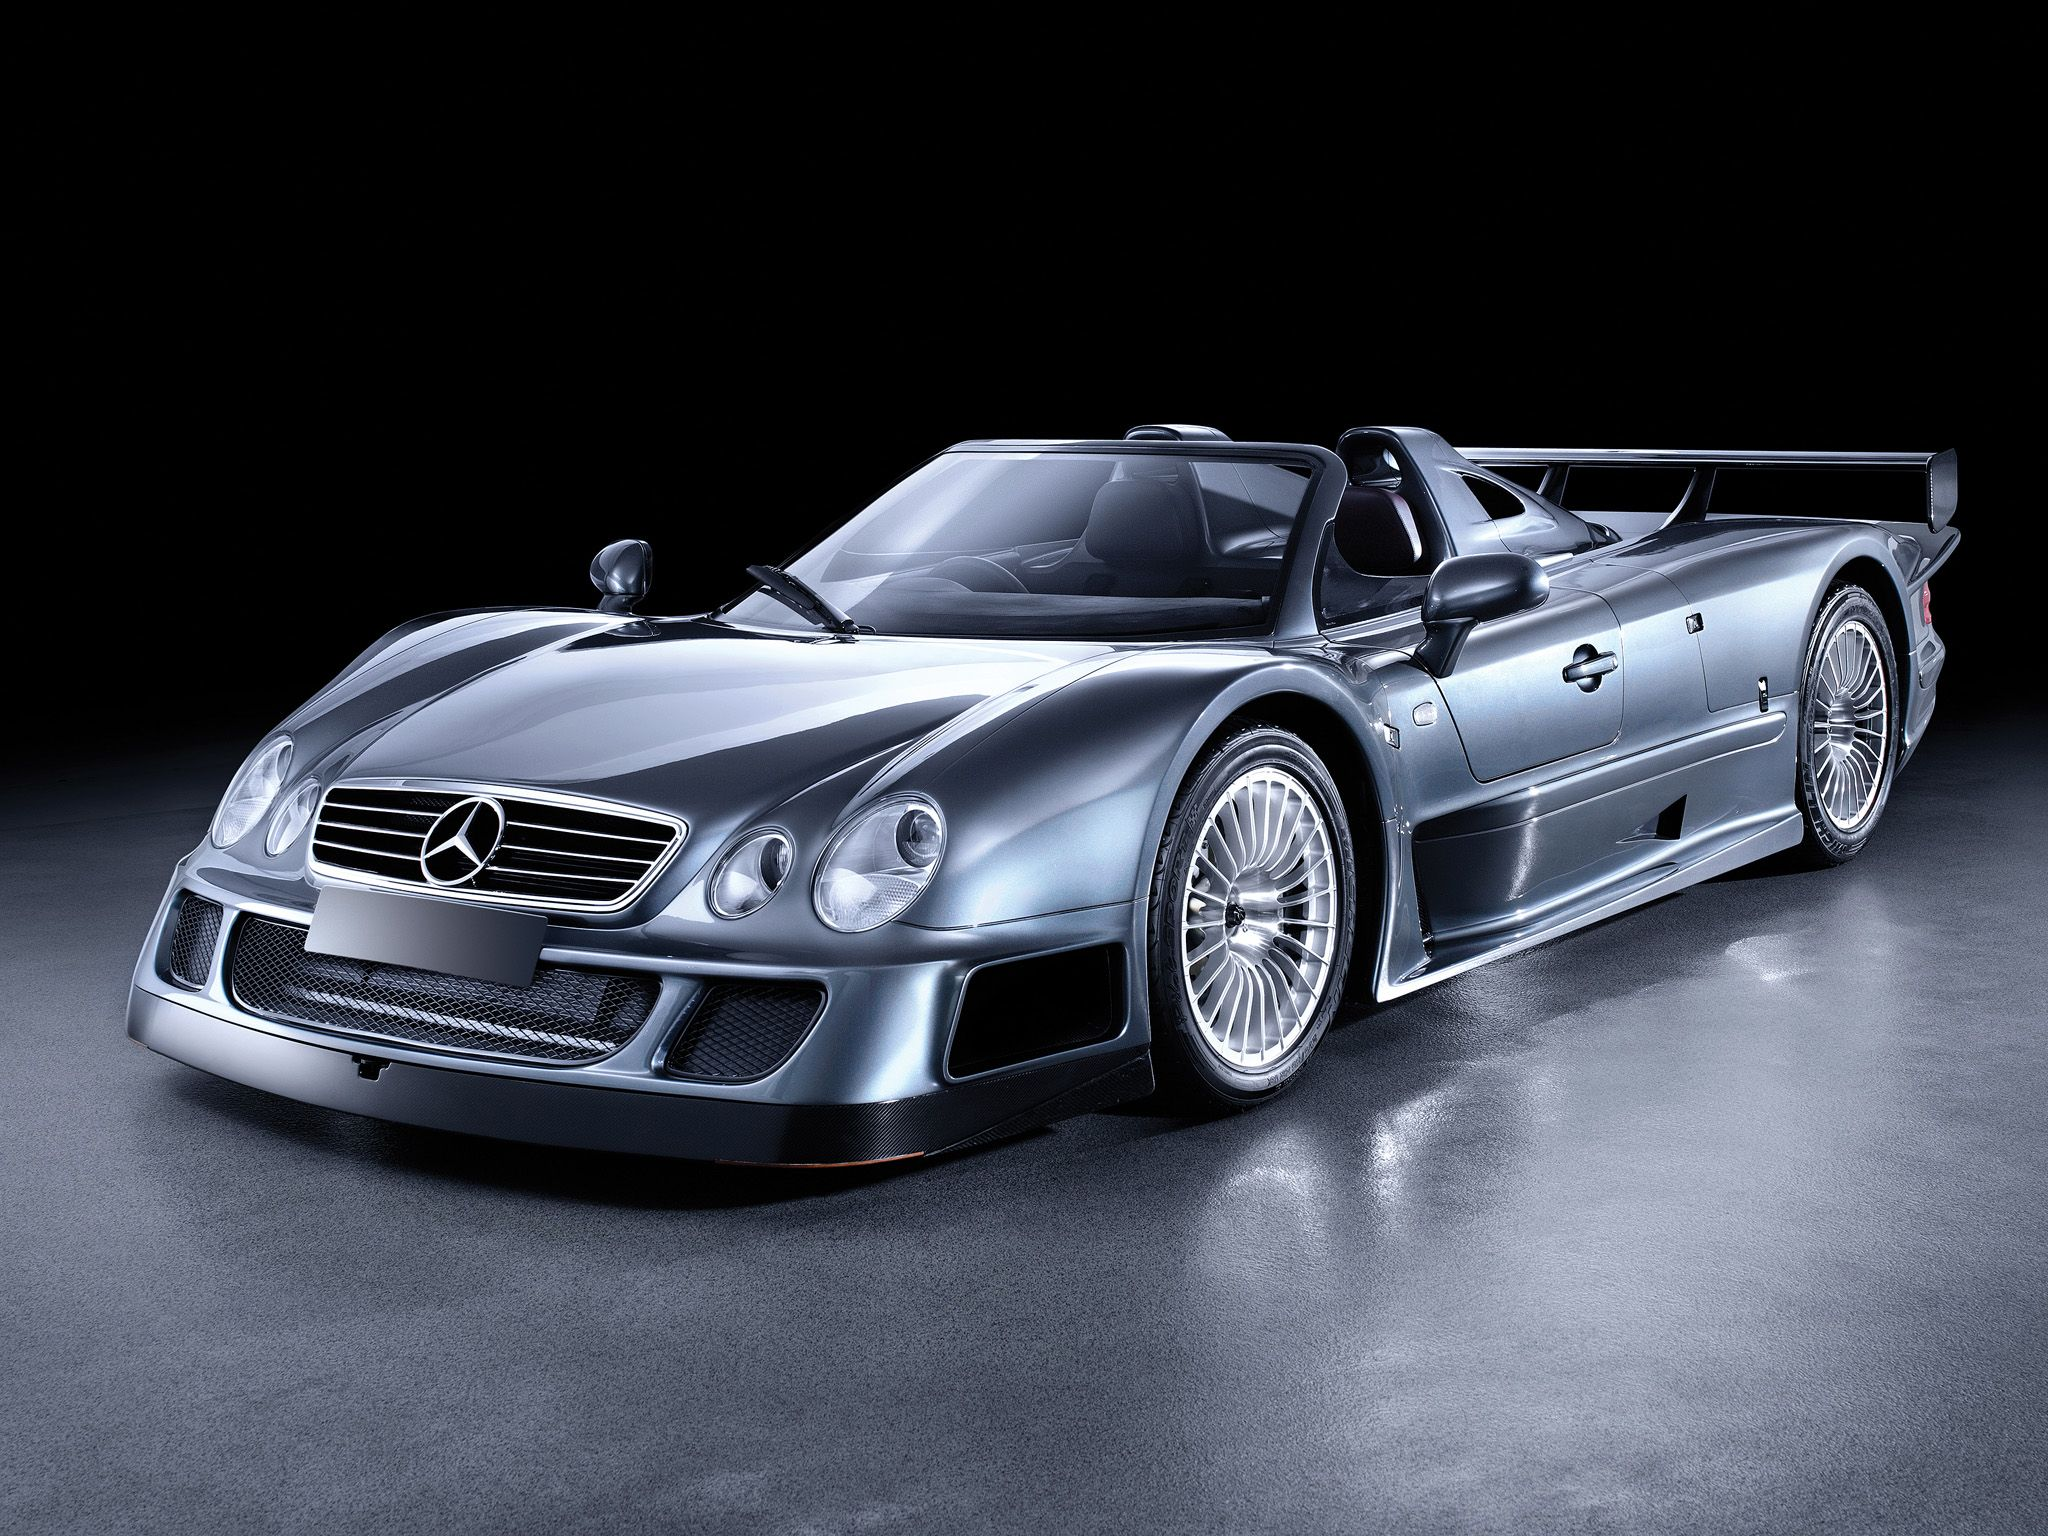 mercedes-benz clk gtr amg roadster road version. front angle